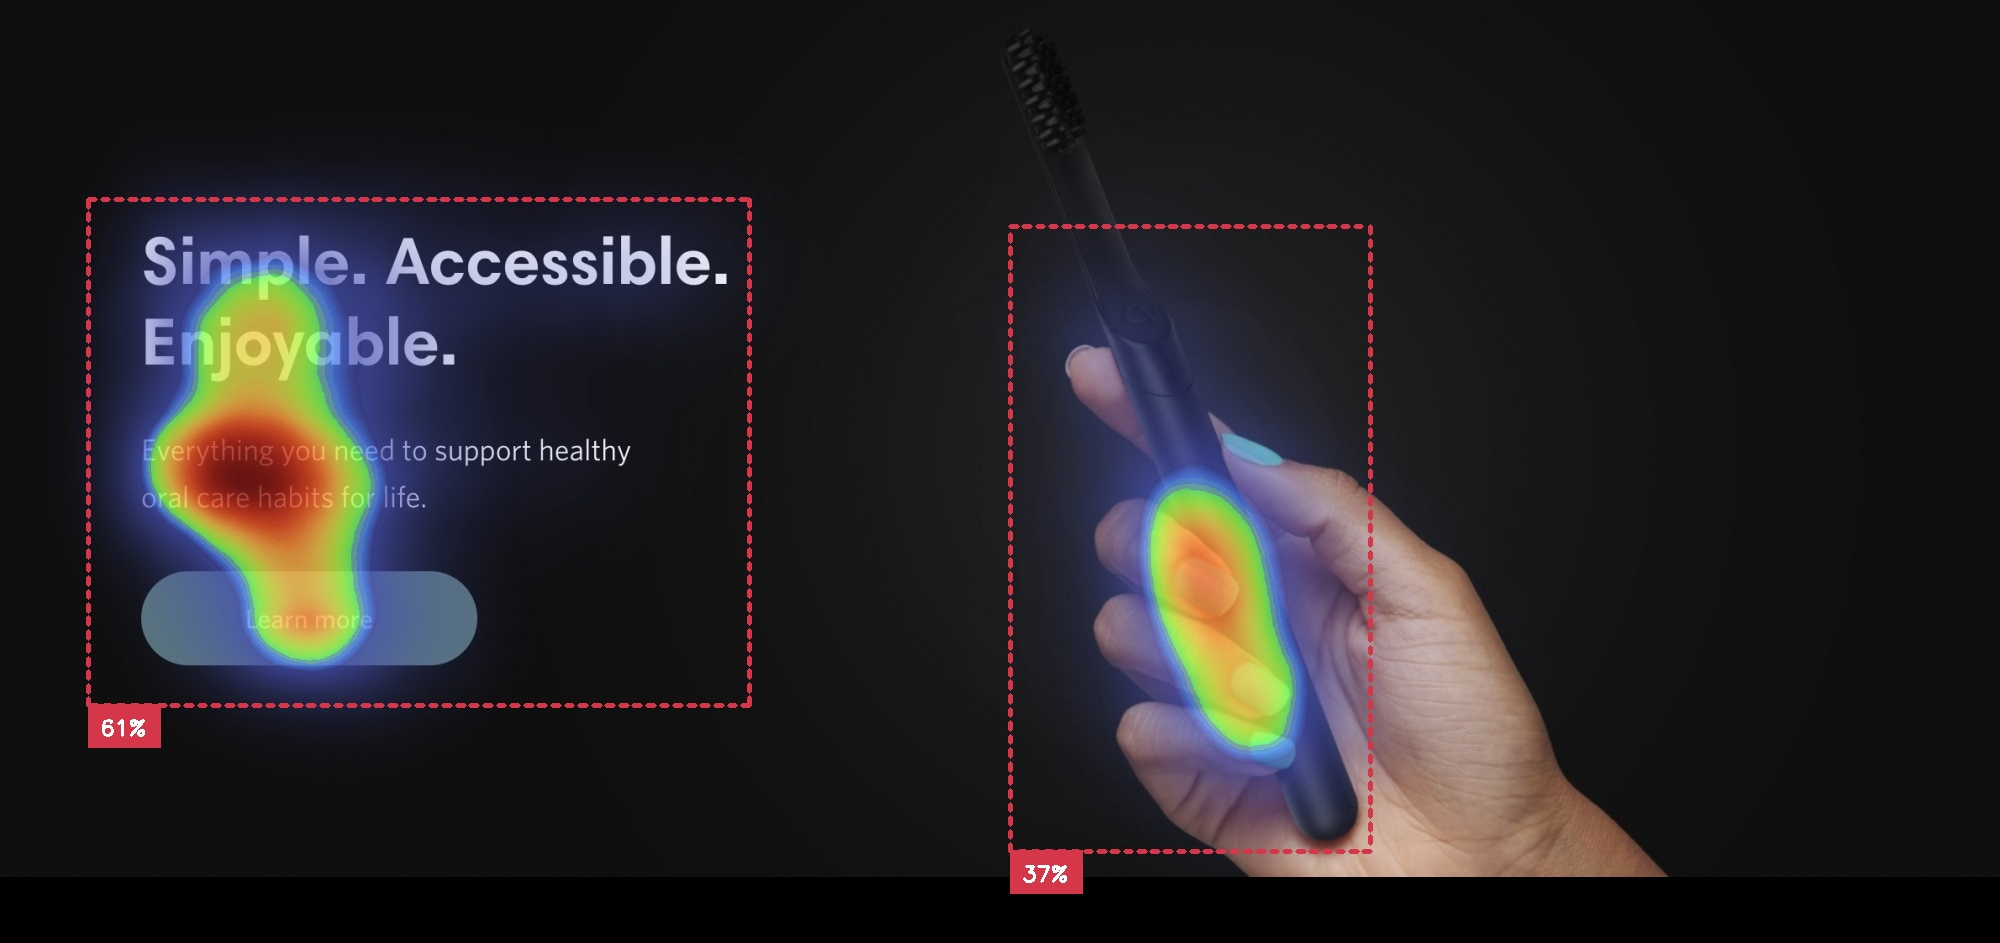 toothbrush in a hand with heading and button lots of black space with attention insight heatmap